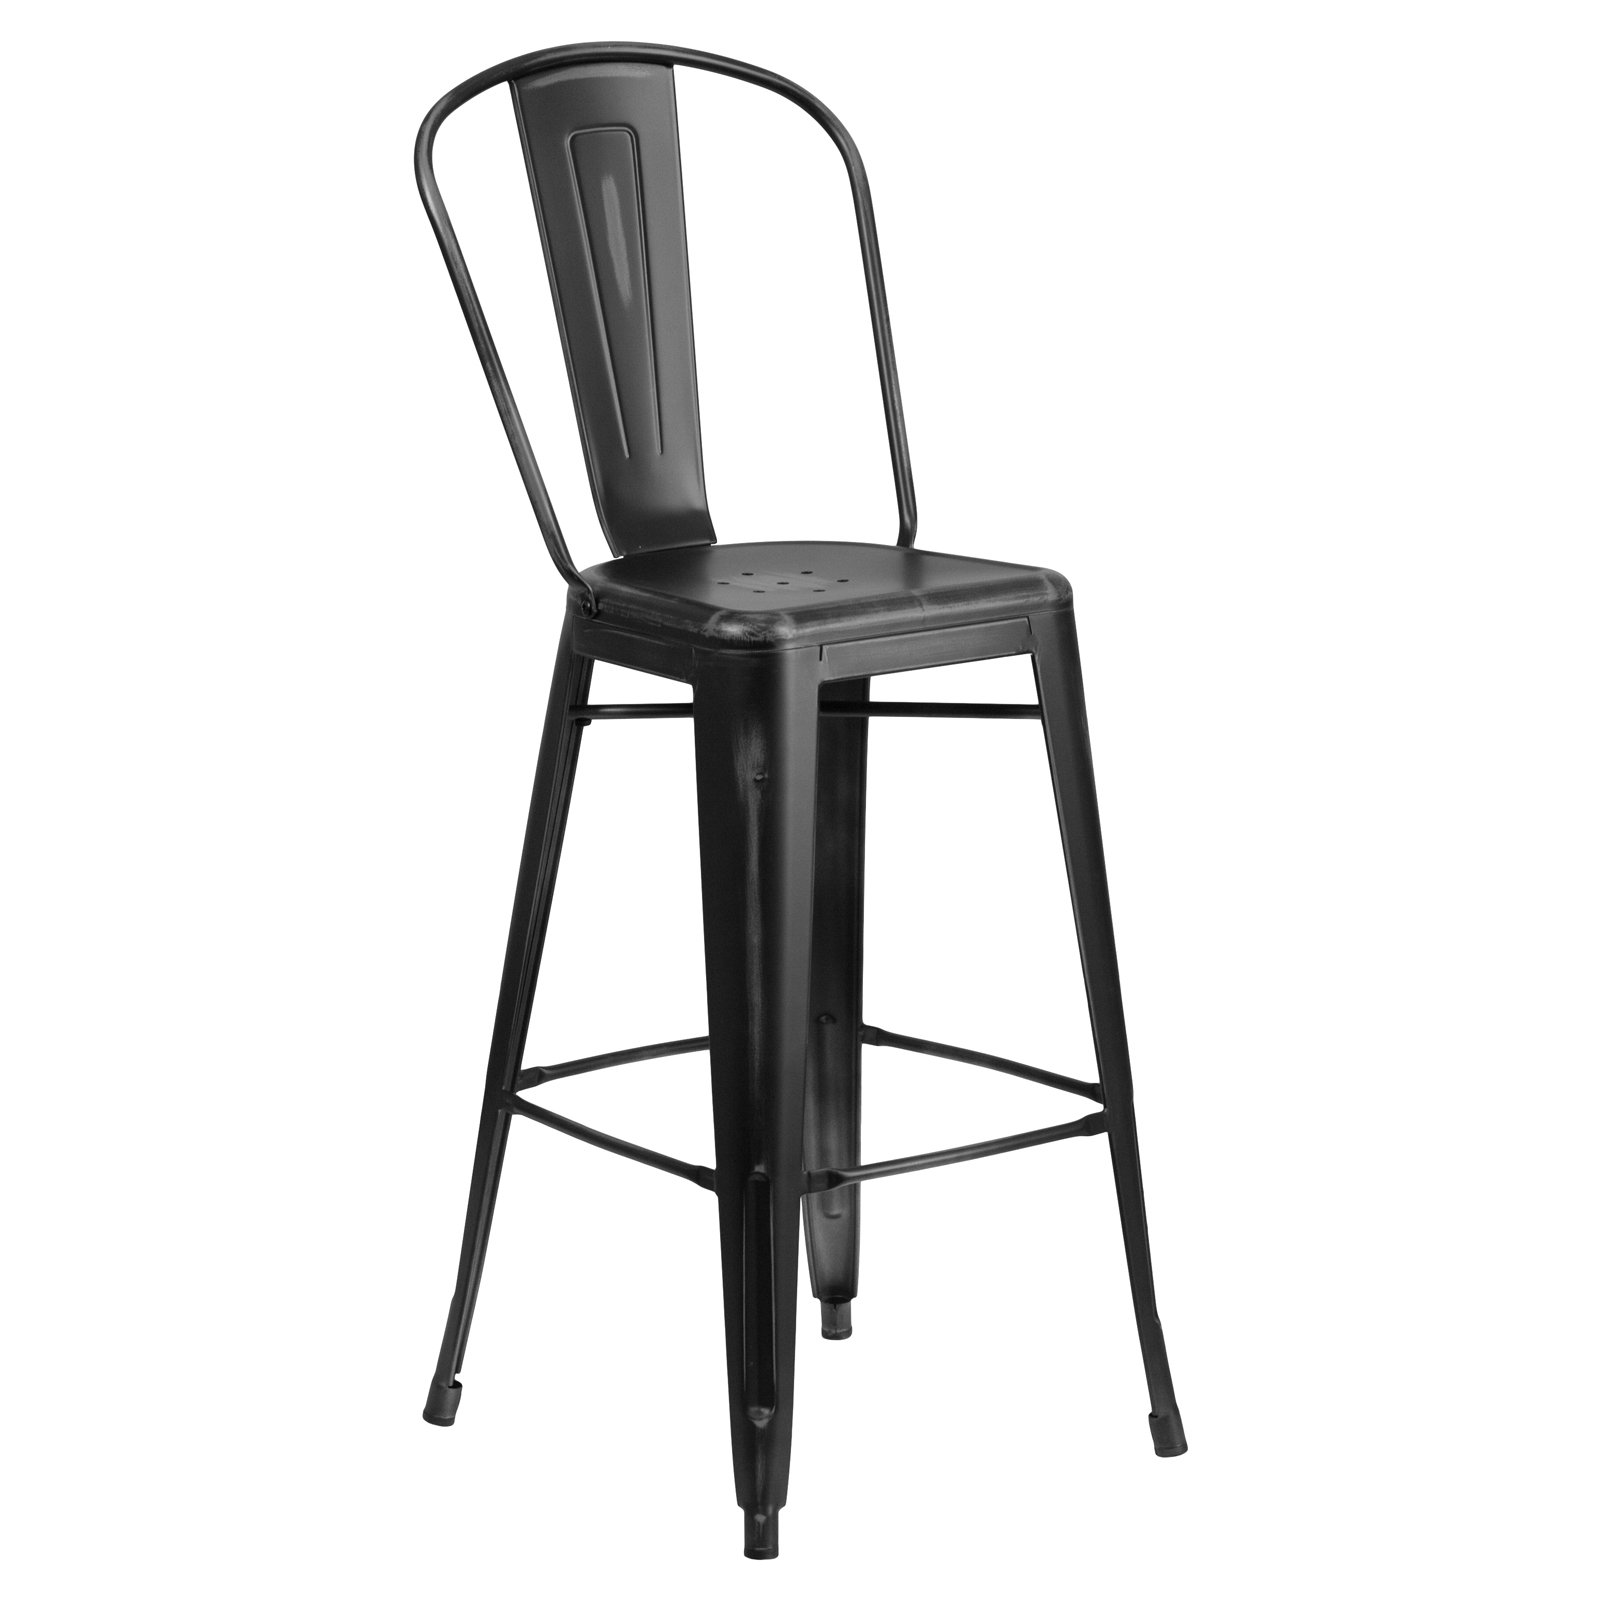 Flash furniture 30 high distressed metal indoor outdoor barstool with back multiple colors walmart com